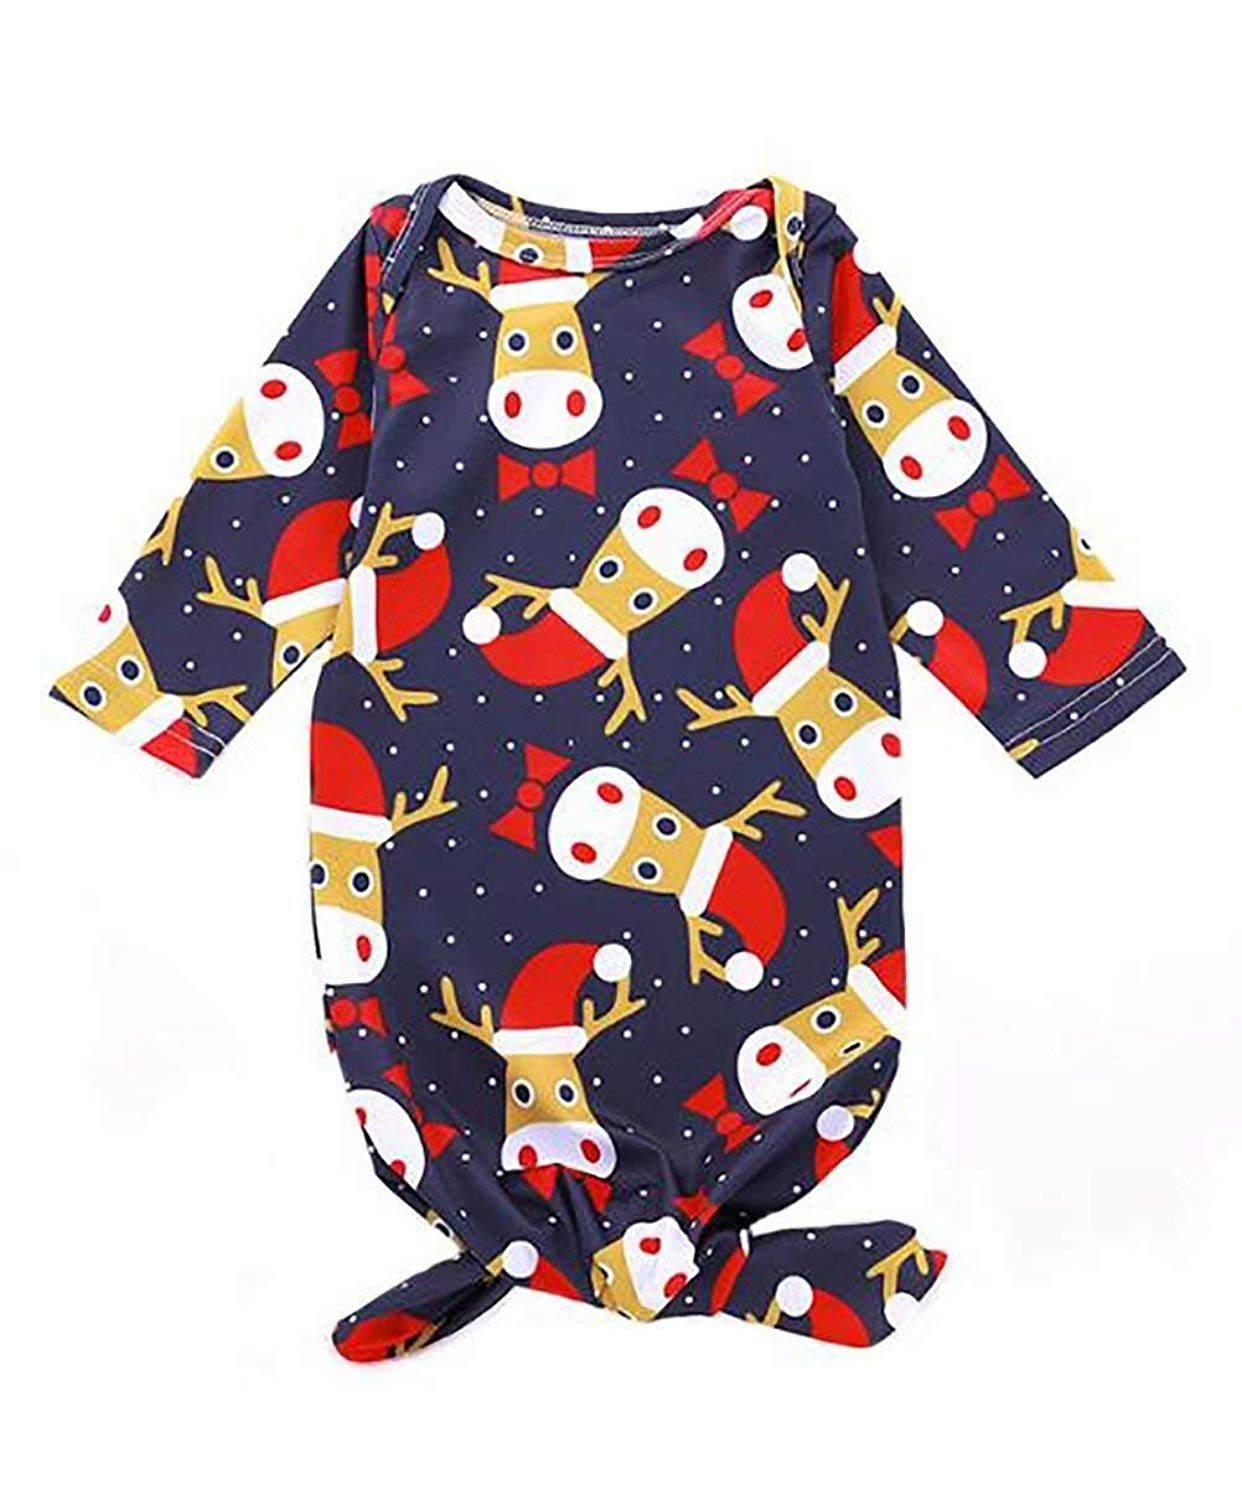 a42ac46f4c92 Sikye 3Pcs Cute Infant Baby Girl Boy Christmas Santa Claus Plush Tops  Pullover Pants Hat Clothing Set ...